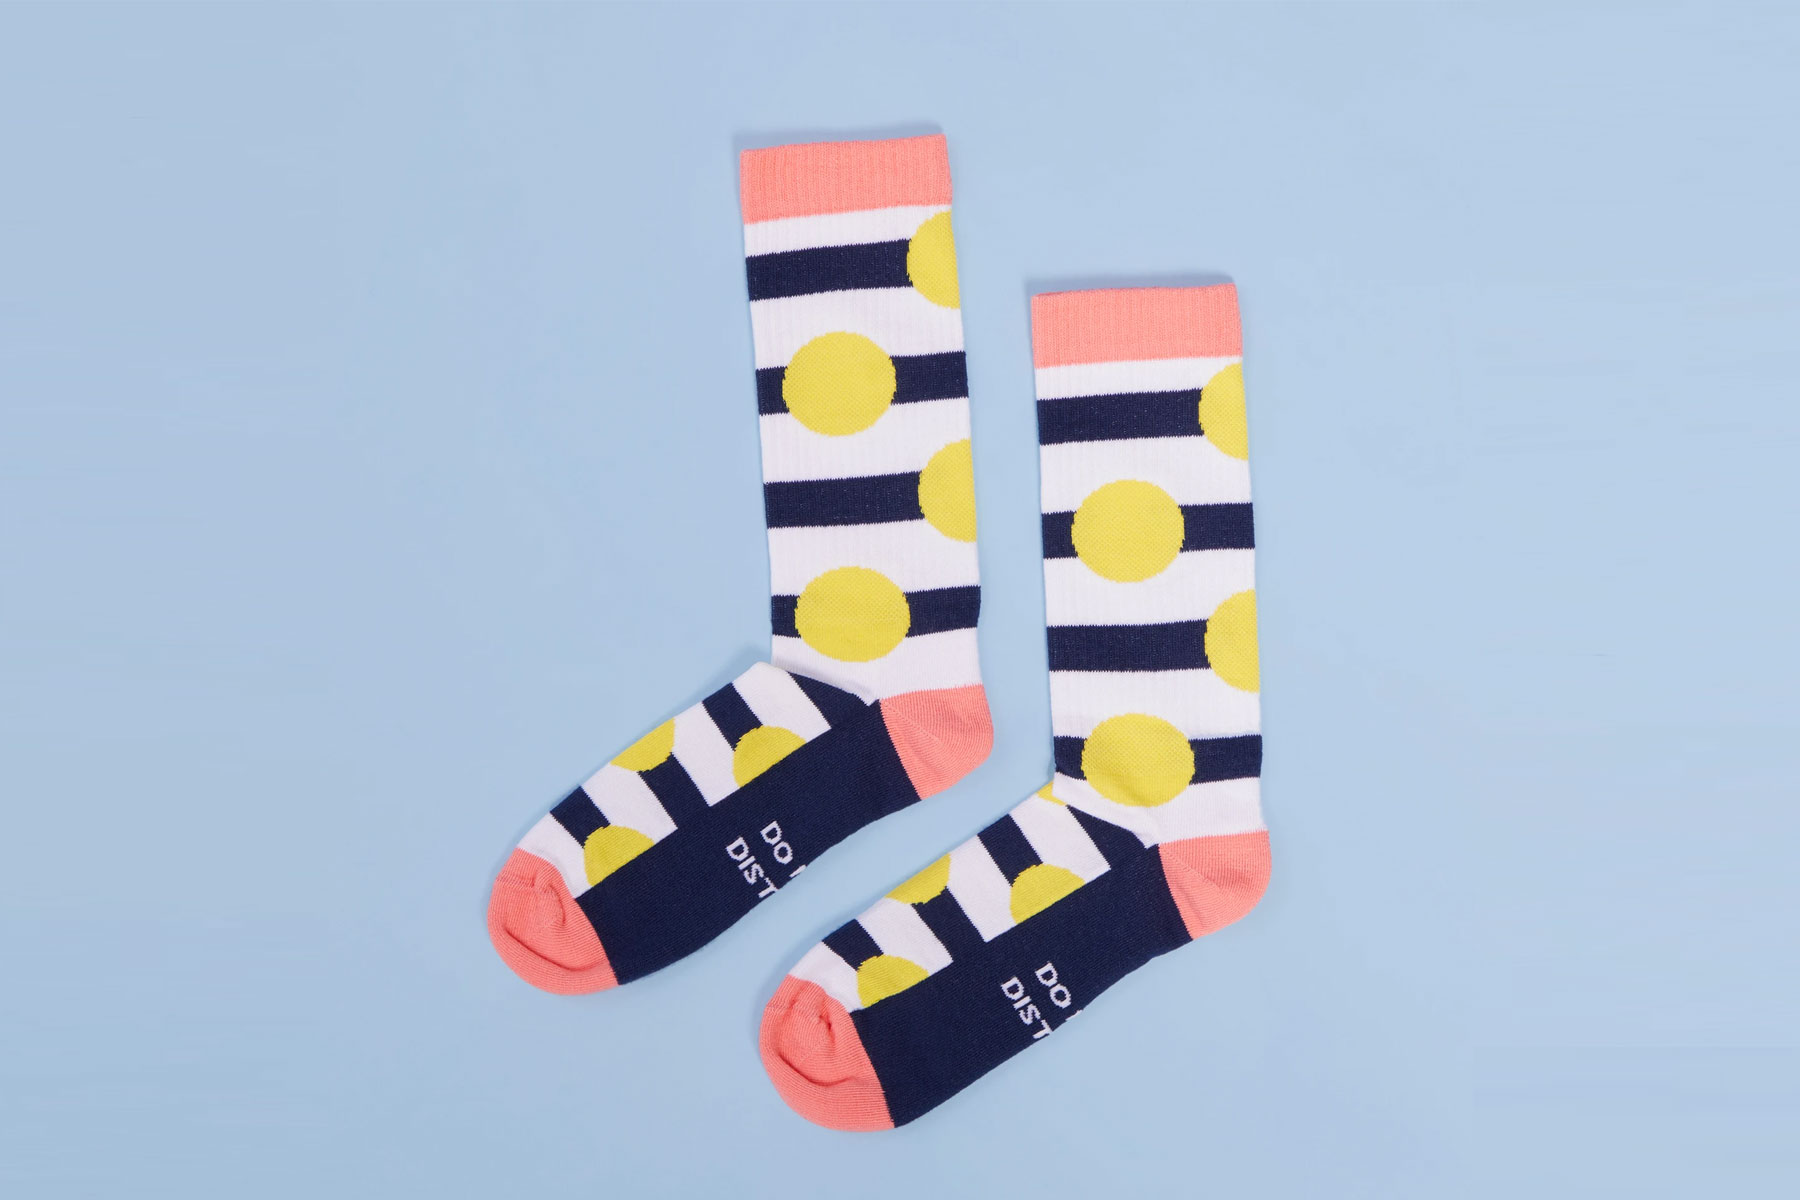 Pink, yellow, and navy patterned socks